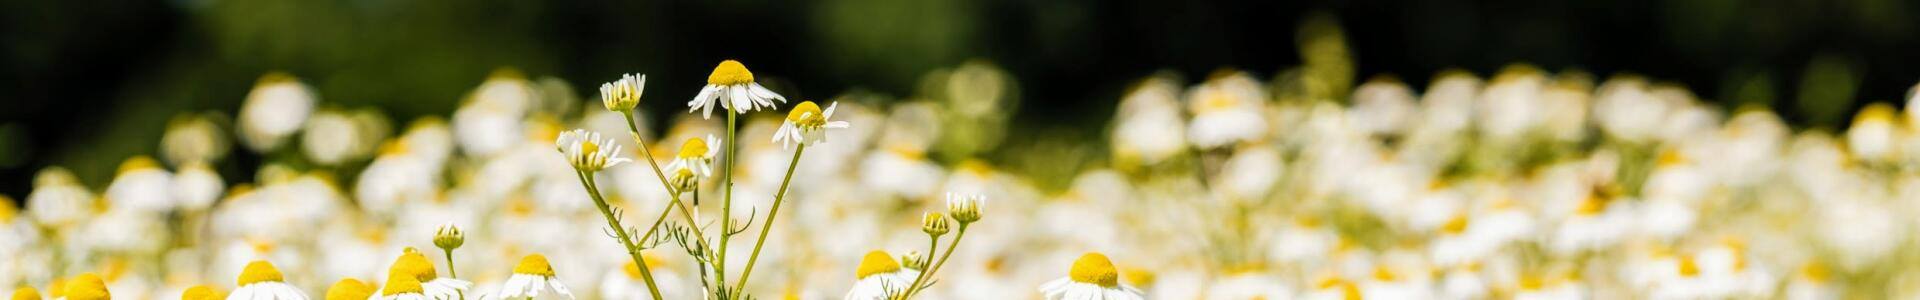 kl_chamomile_active-ingredient_field_plant_2019 -72-